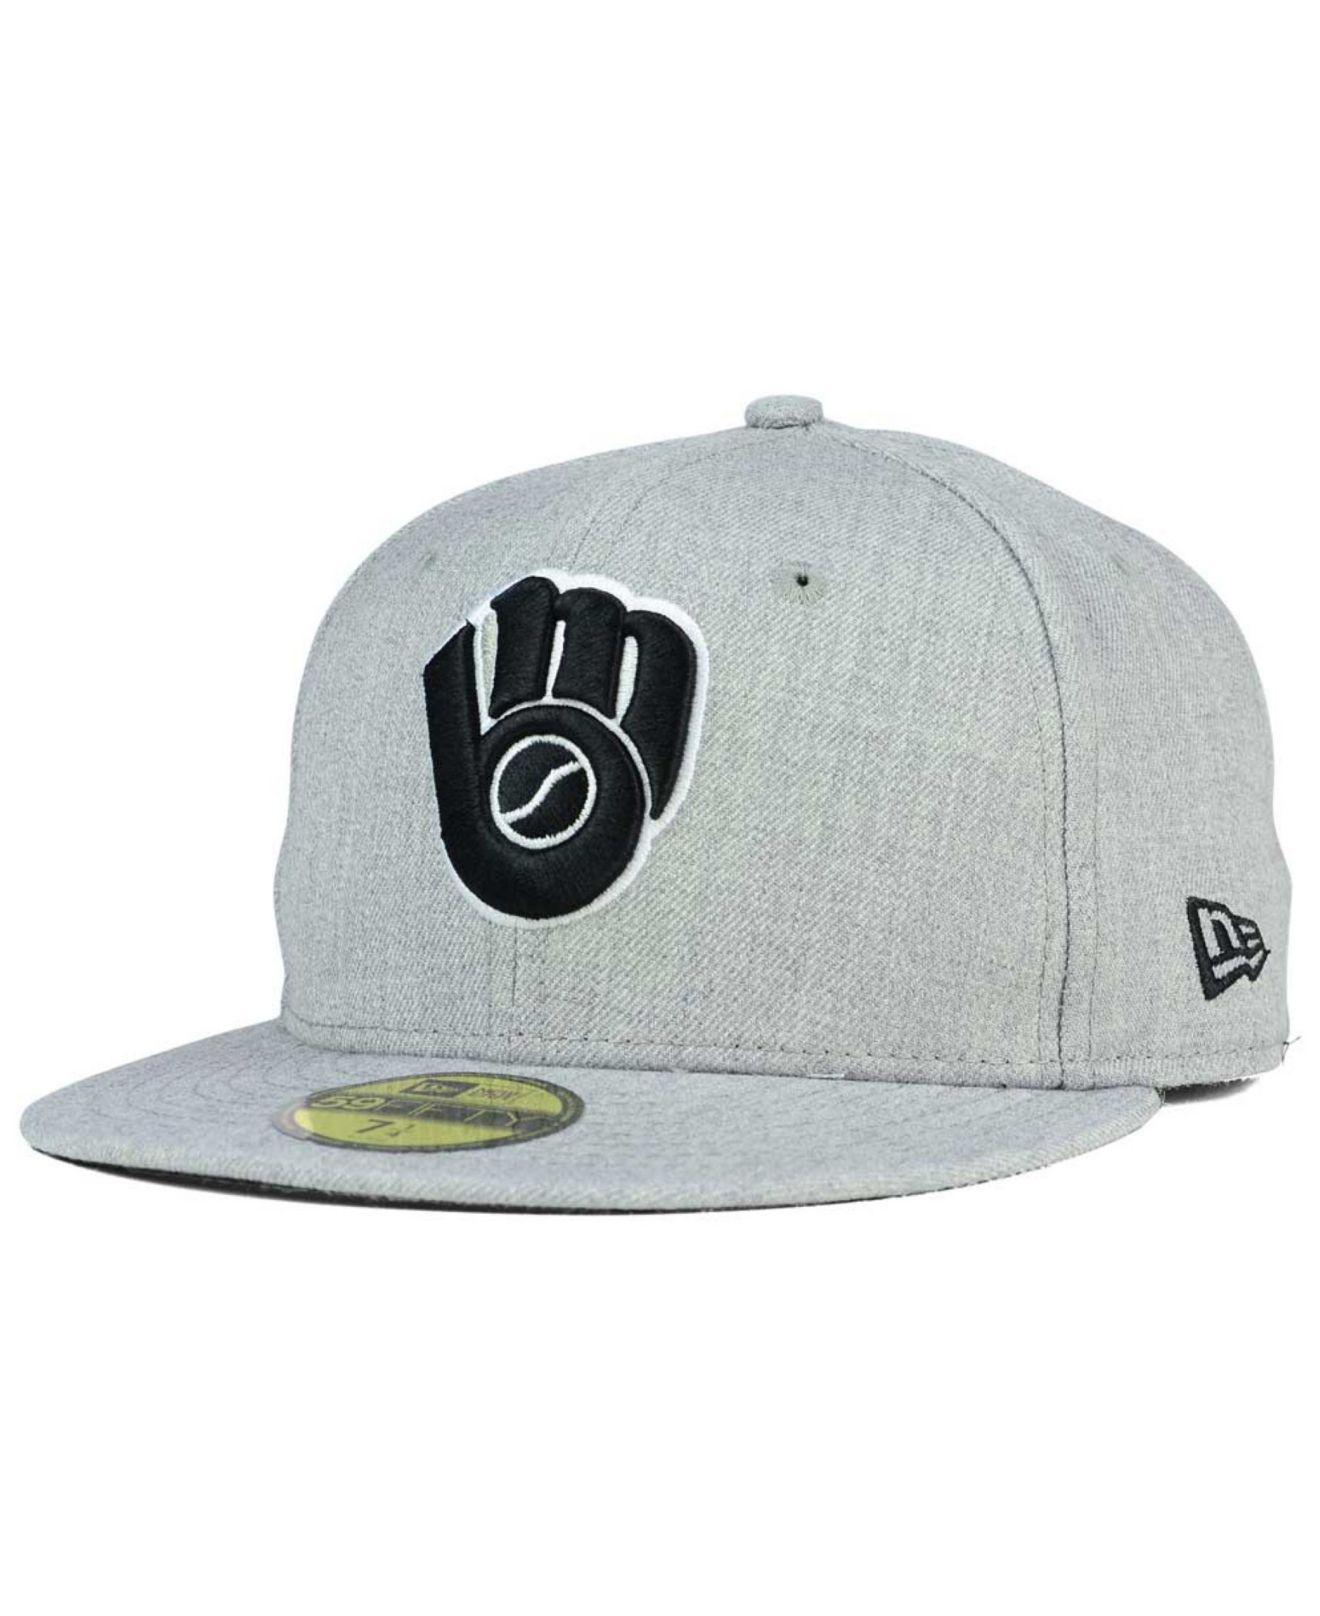 huge selection of ac0e5 96064 ... czech ktz milwaukee brewers heather black white 59fifty cap for men lyst.  view fullscreen 01fa1